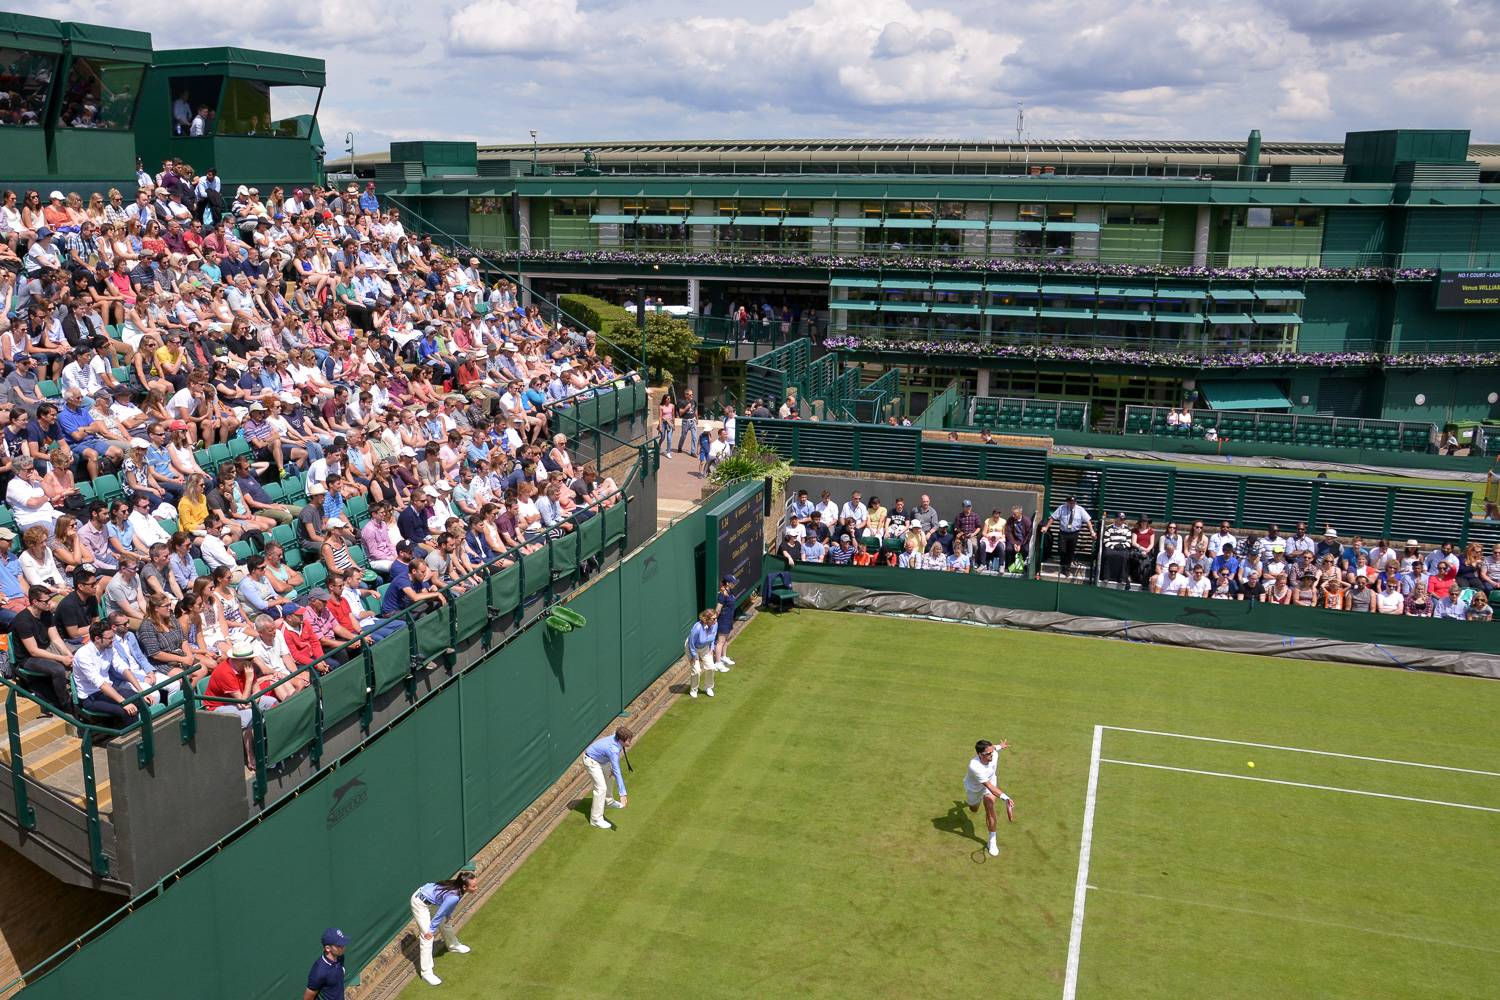 Photo d'un match et de spectateurs sur le court n°18 à Wimbledon.